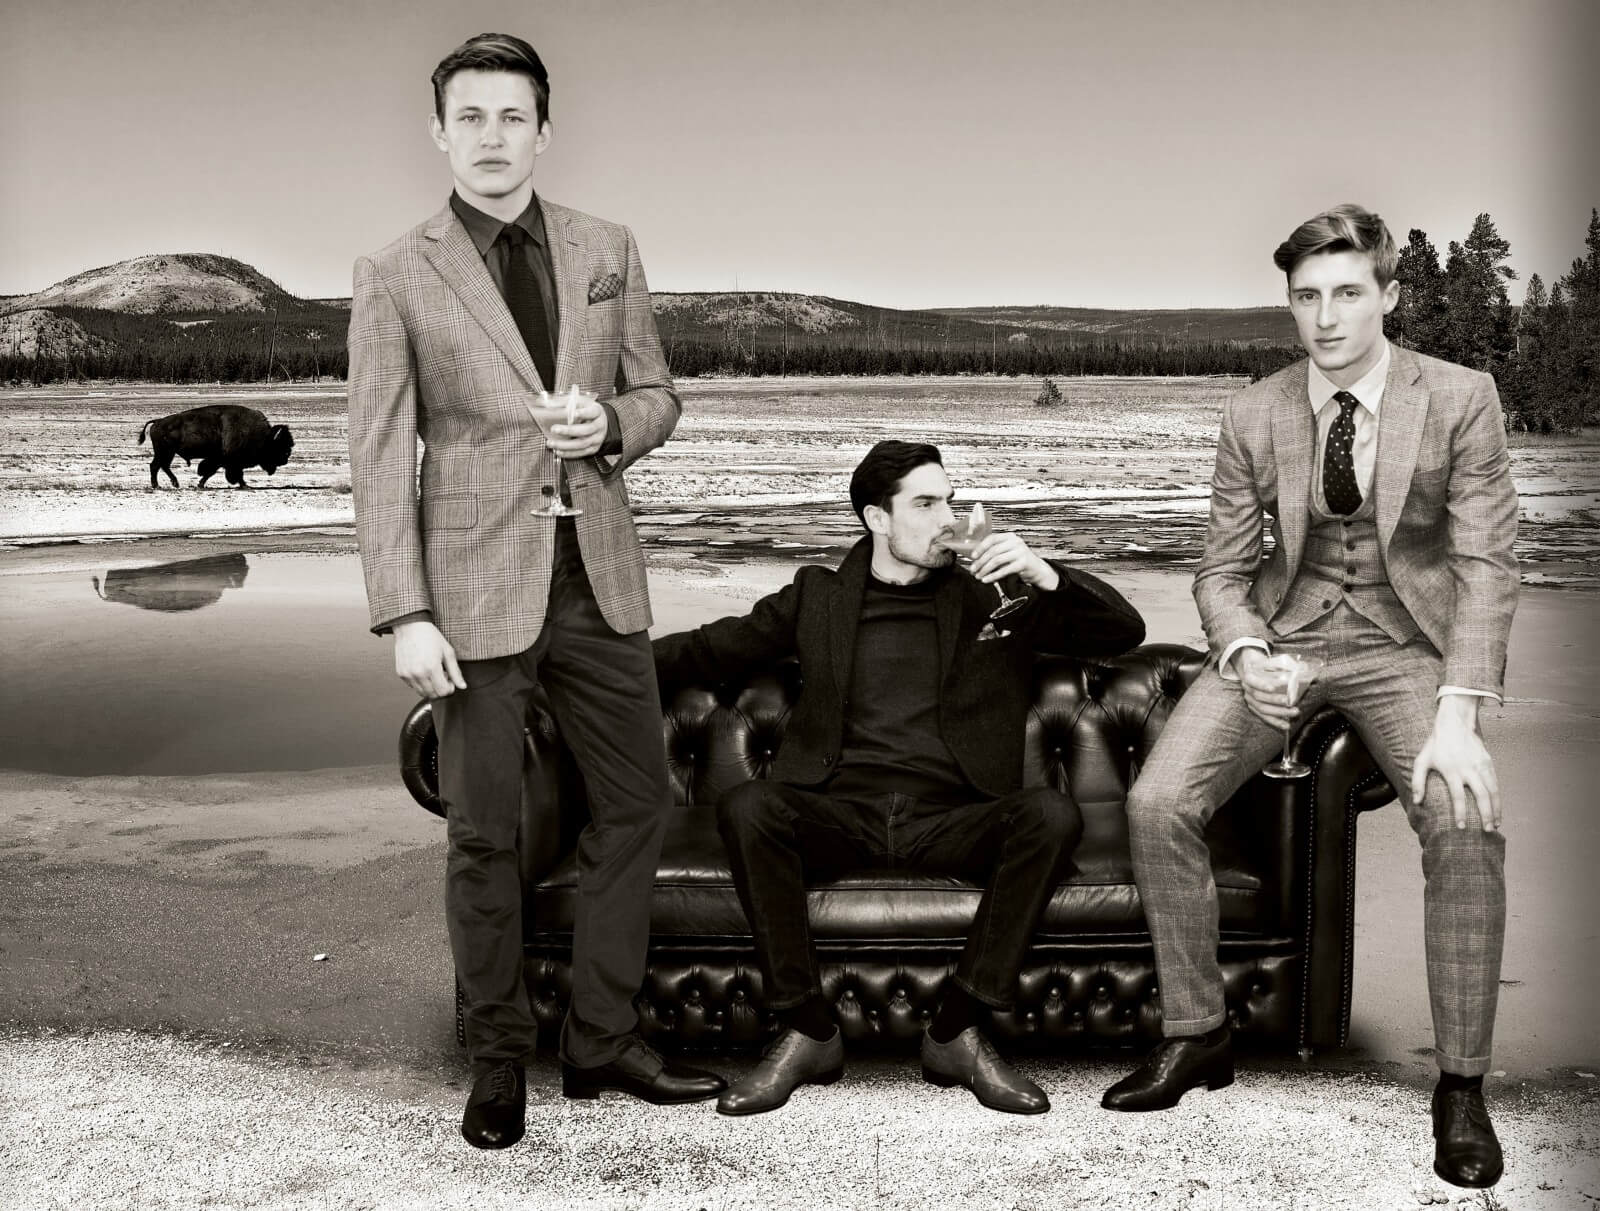 Gieves & Hawkes and Whitley Neil: A Sense of Adventure